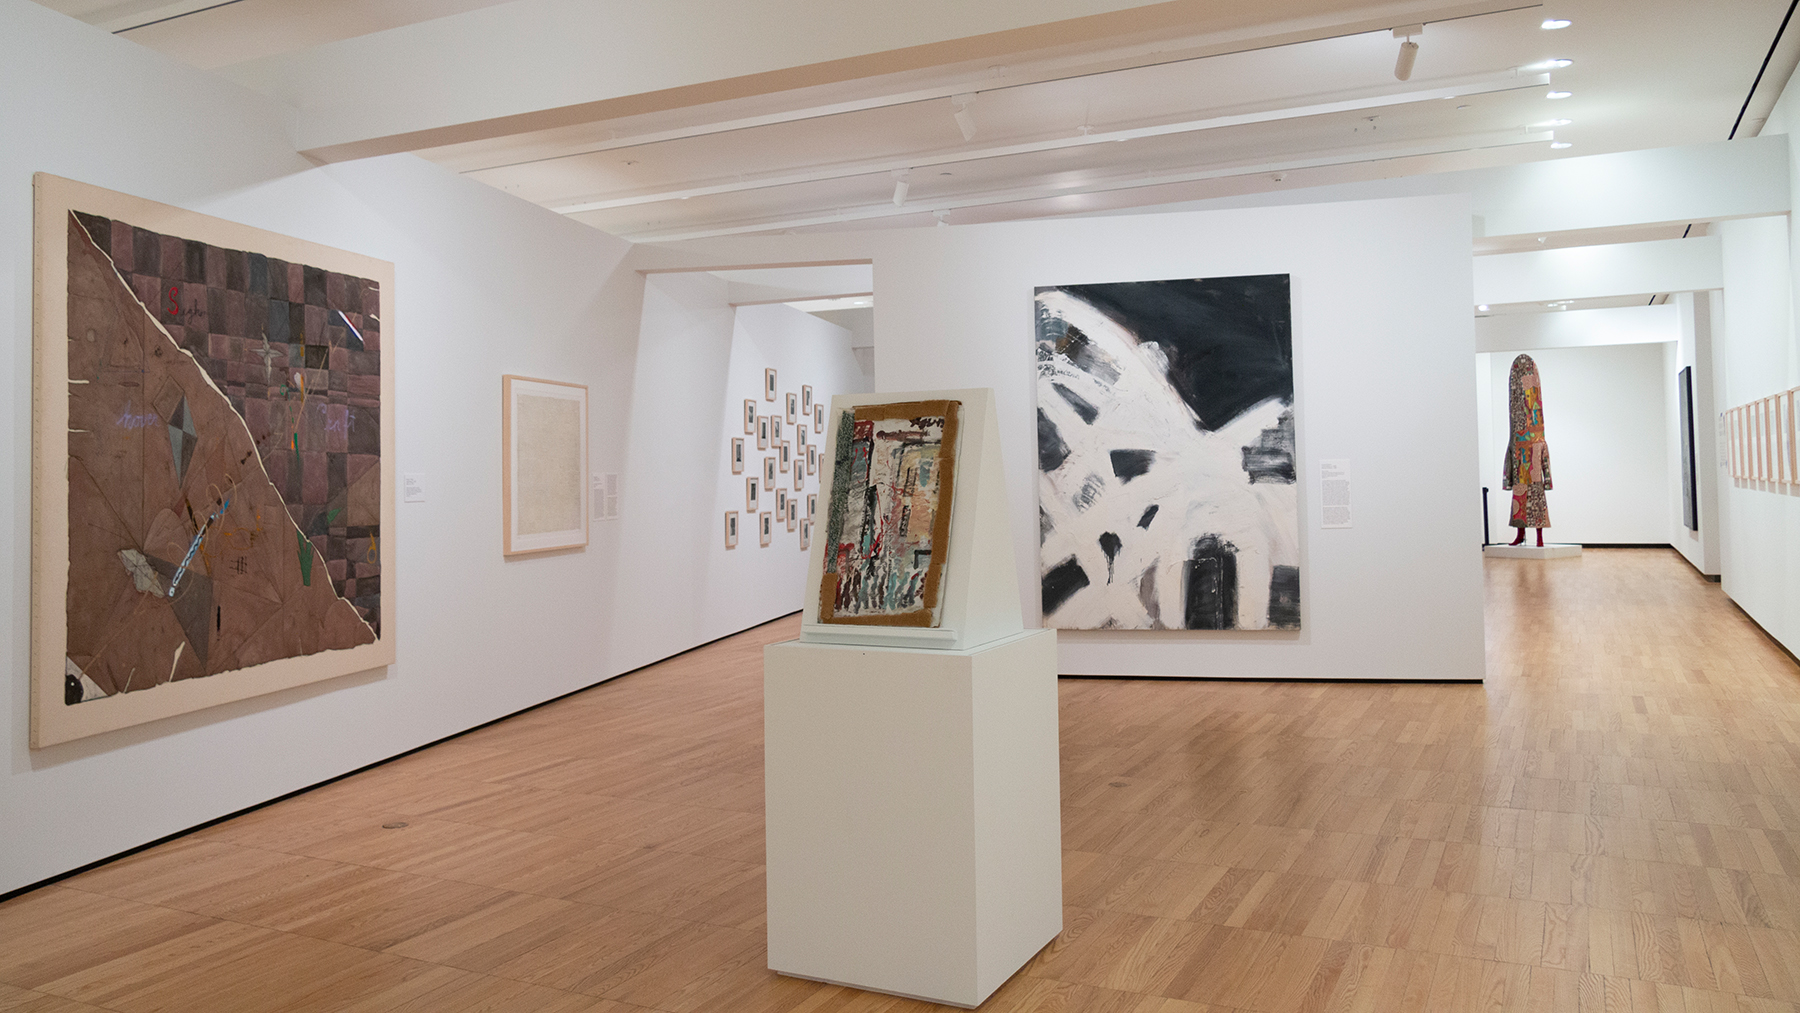 view of the gallery featuring the new installation